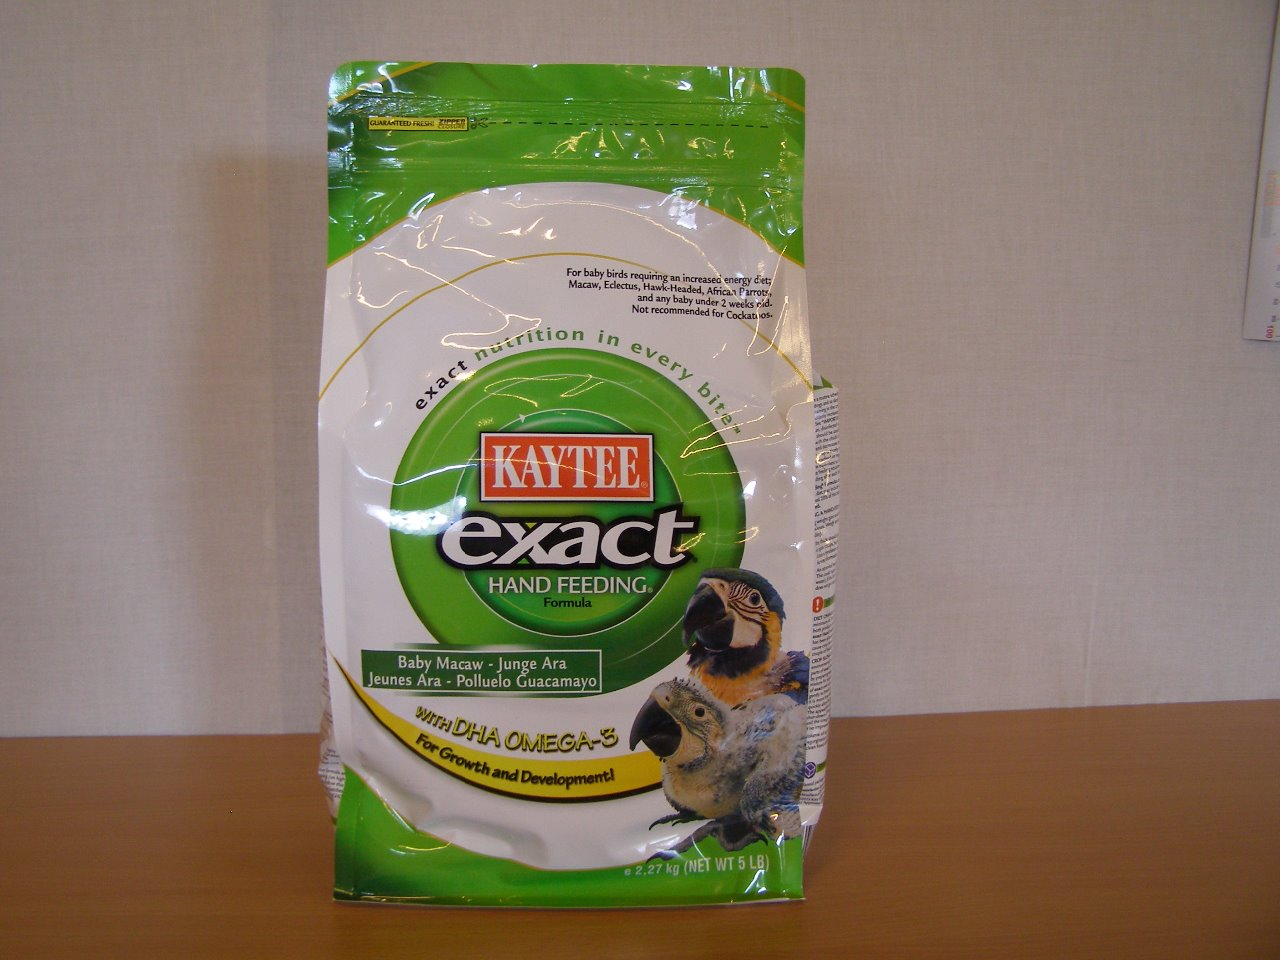 Kaytee Products Dokrmovací směs Exact Hand Feeding Macaw s DHA 2,27 kg